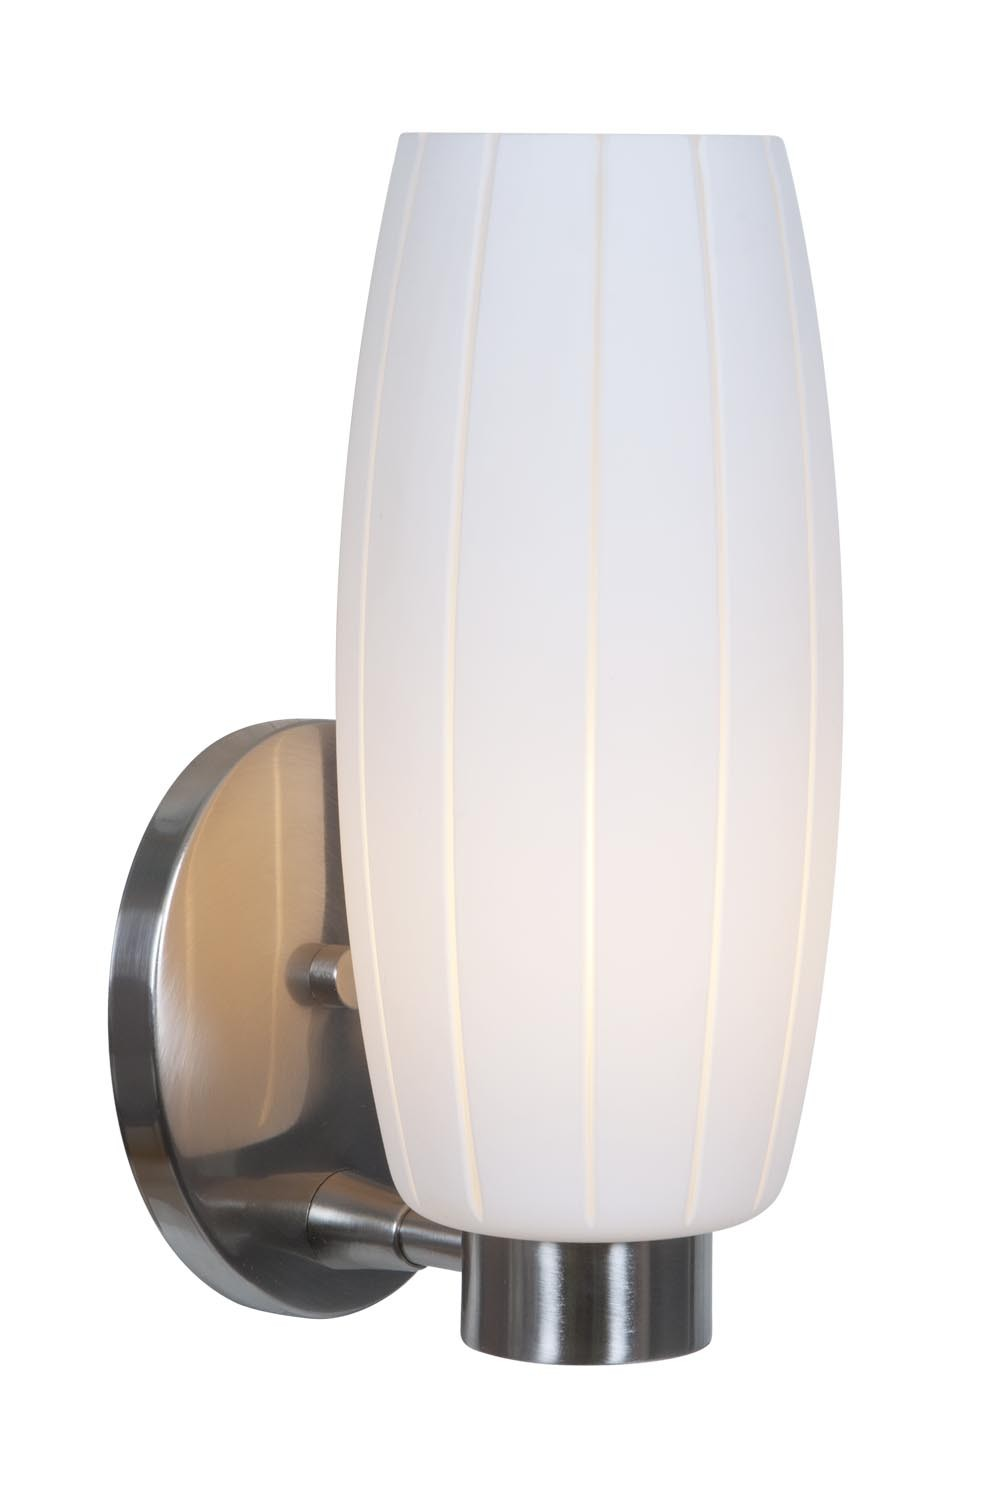 Access Lighting 23970chamb Pearl Wall Fixture. What Is A Duvet. Lamps.com. Glen Gery Brick. Edge Homes. Neo Furniture. Teal Couch. Cultured Marble Shower Walls. Fabricators Unlimited